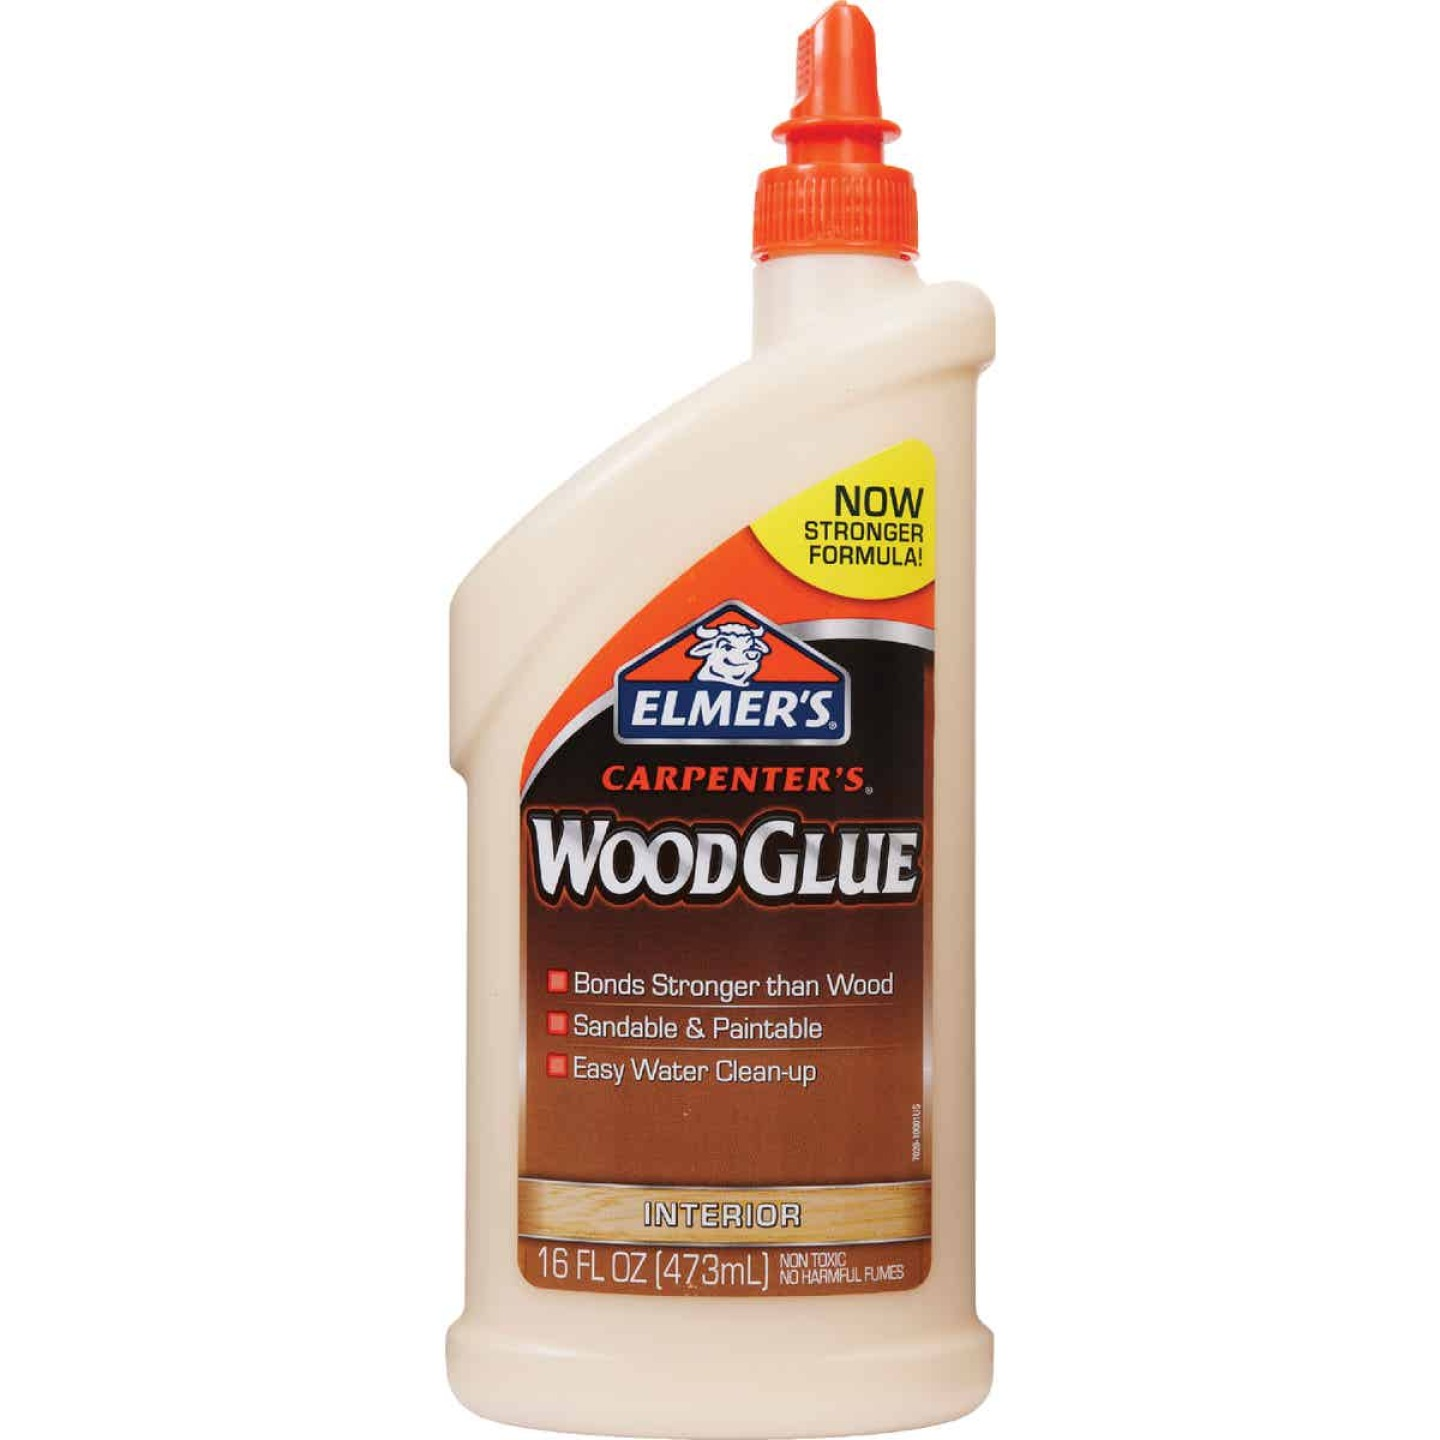 Elmer's Carpenter's 16 Oz. Wood Glue Image 1